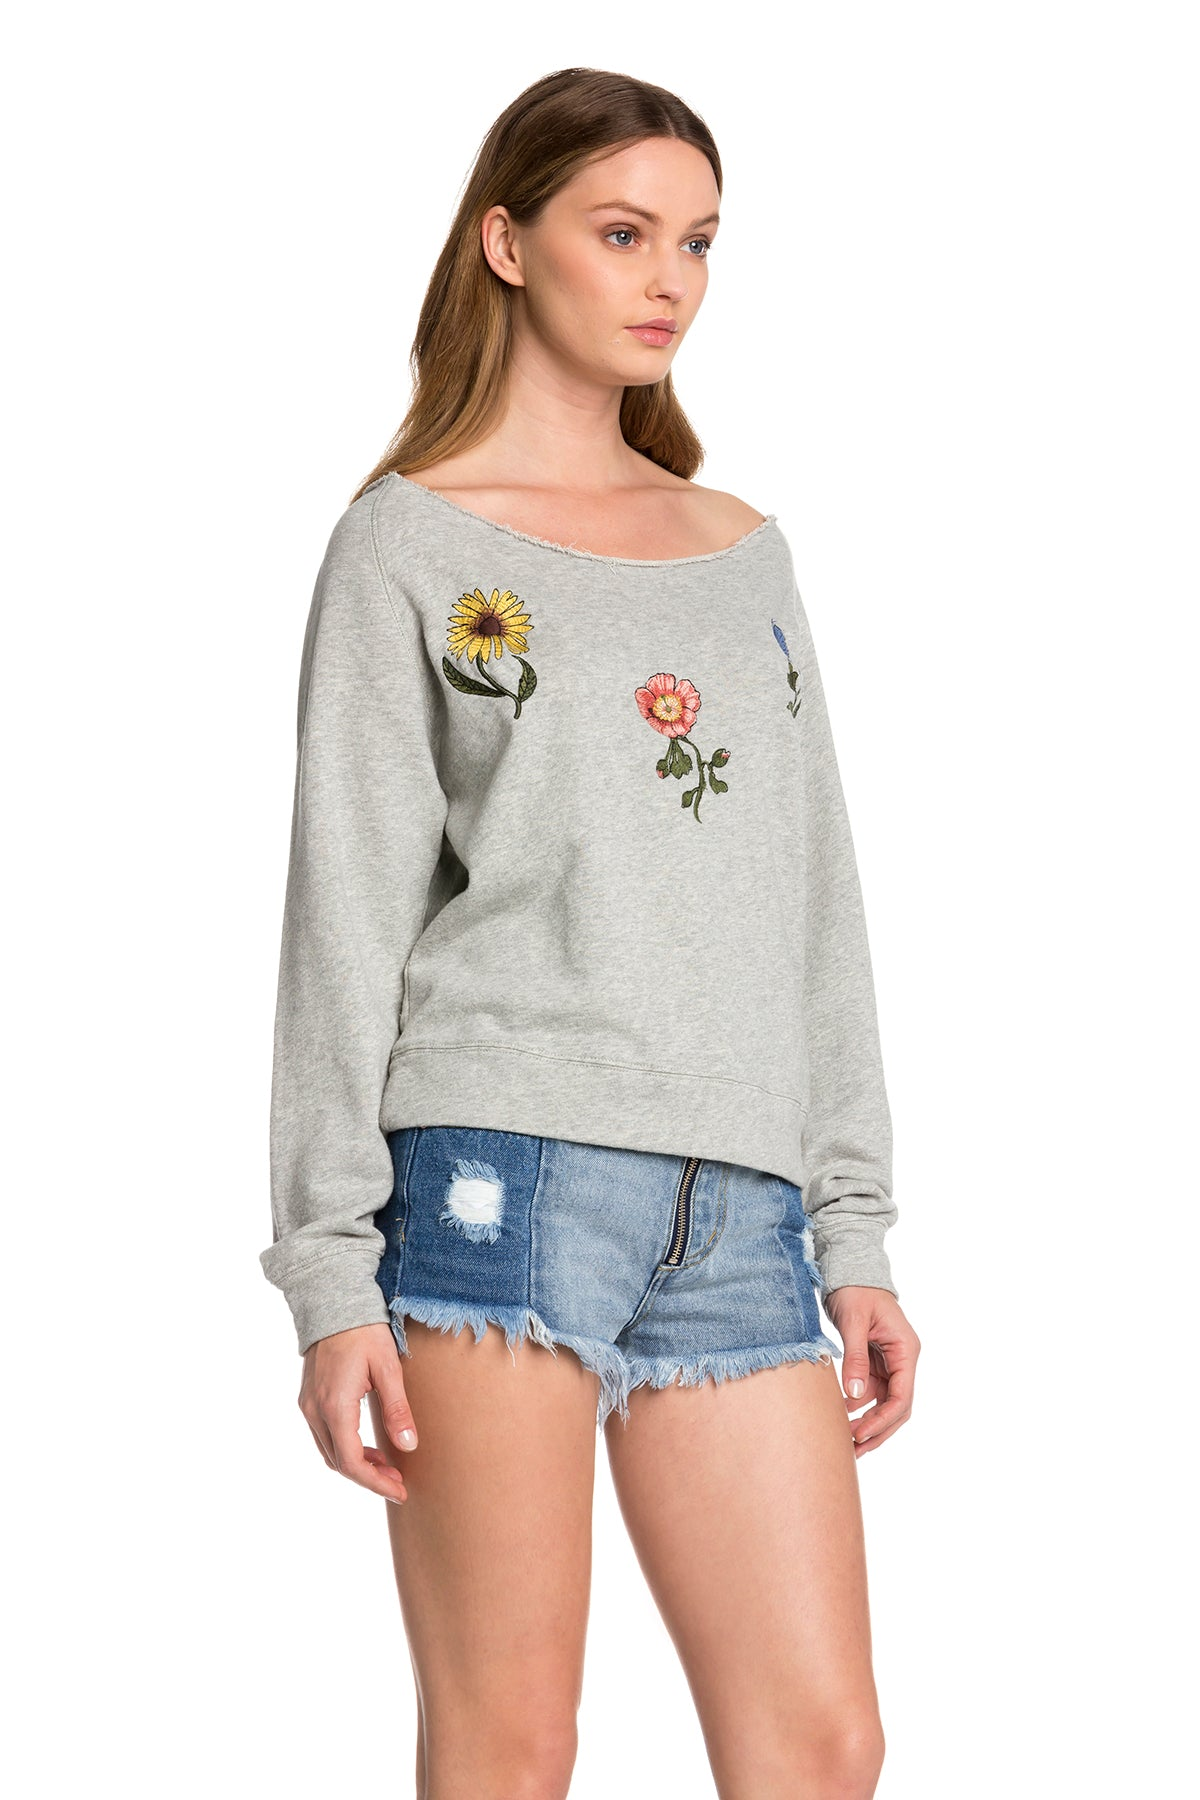 Wide Neck Floral Sweater - Dawn and Rae Boutique